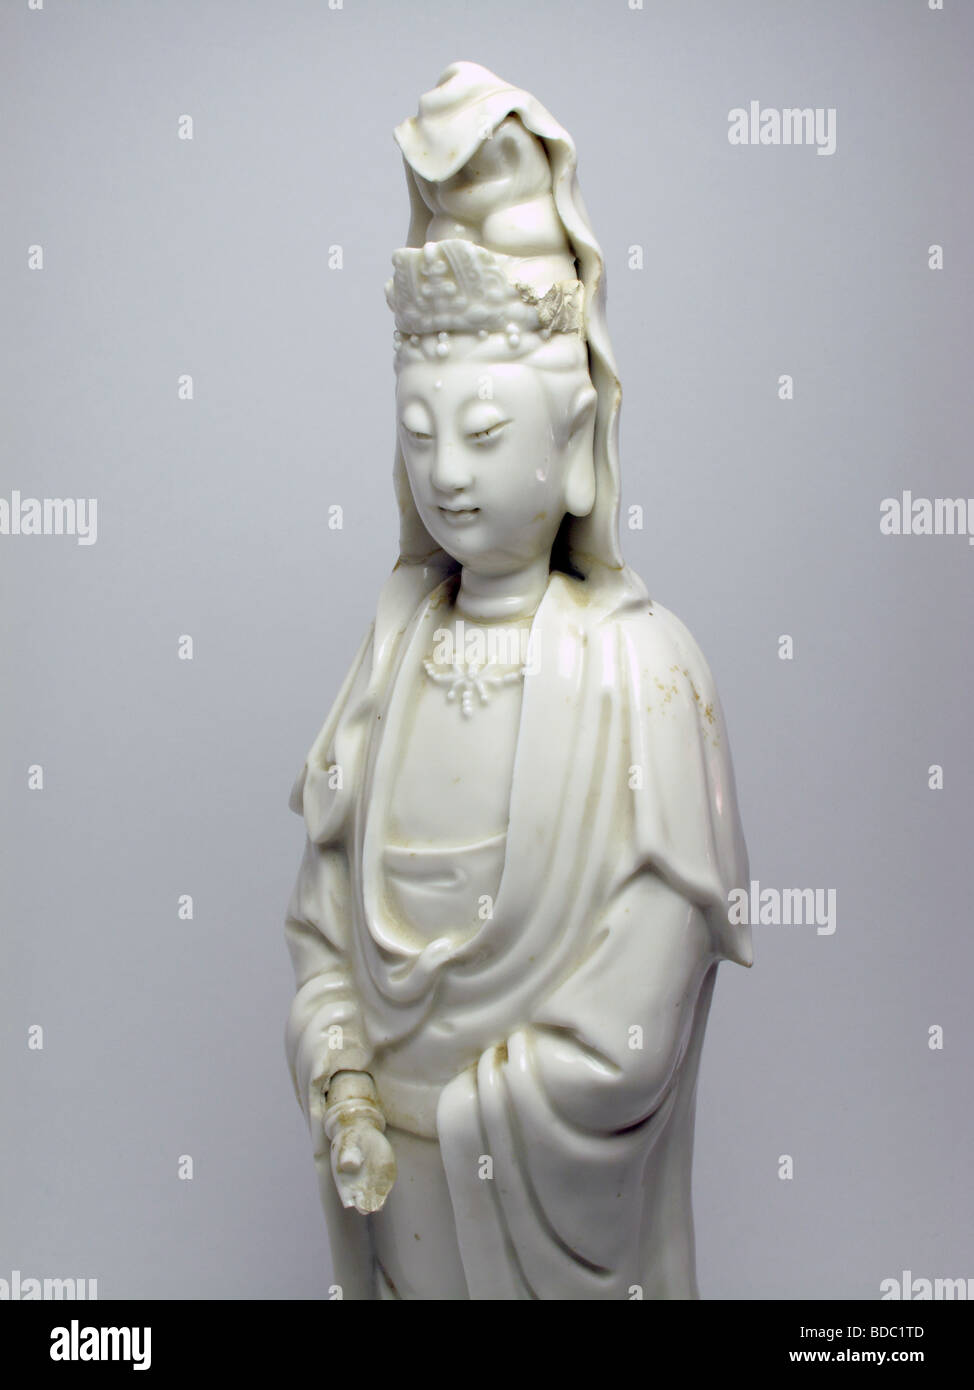 Antique Chines bland de chine porcelain figure of Guanyin. - Stock Image